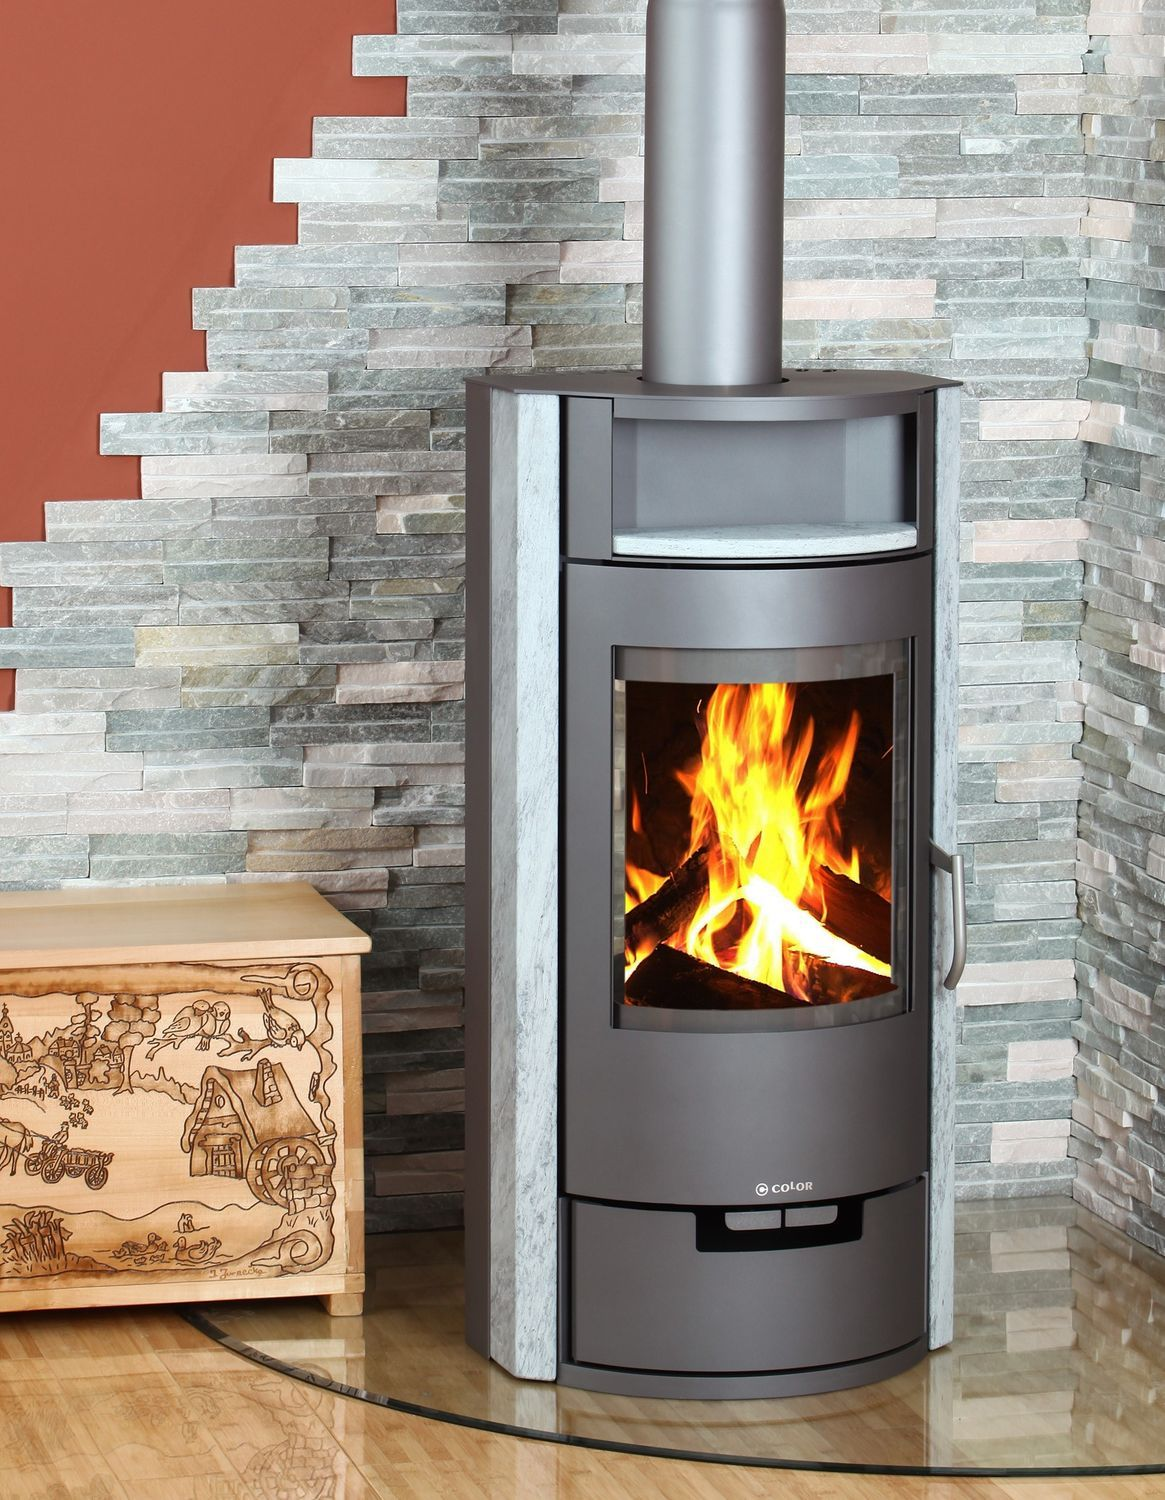 the most wood heater efficient top standing free fireplace burning country heaters freestanding fireplaces heatcharm wide